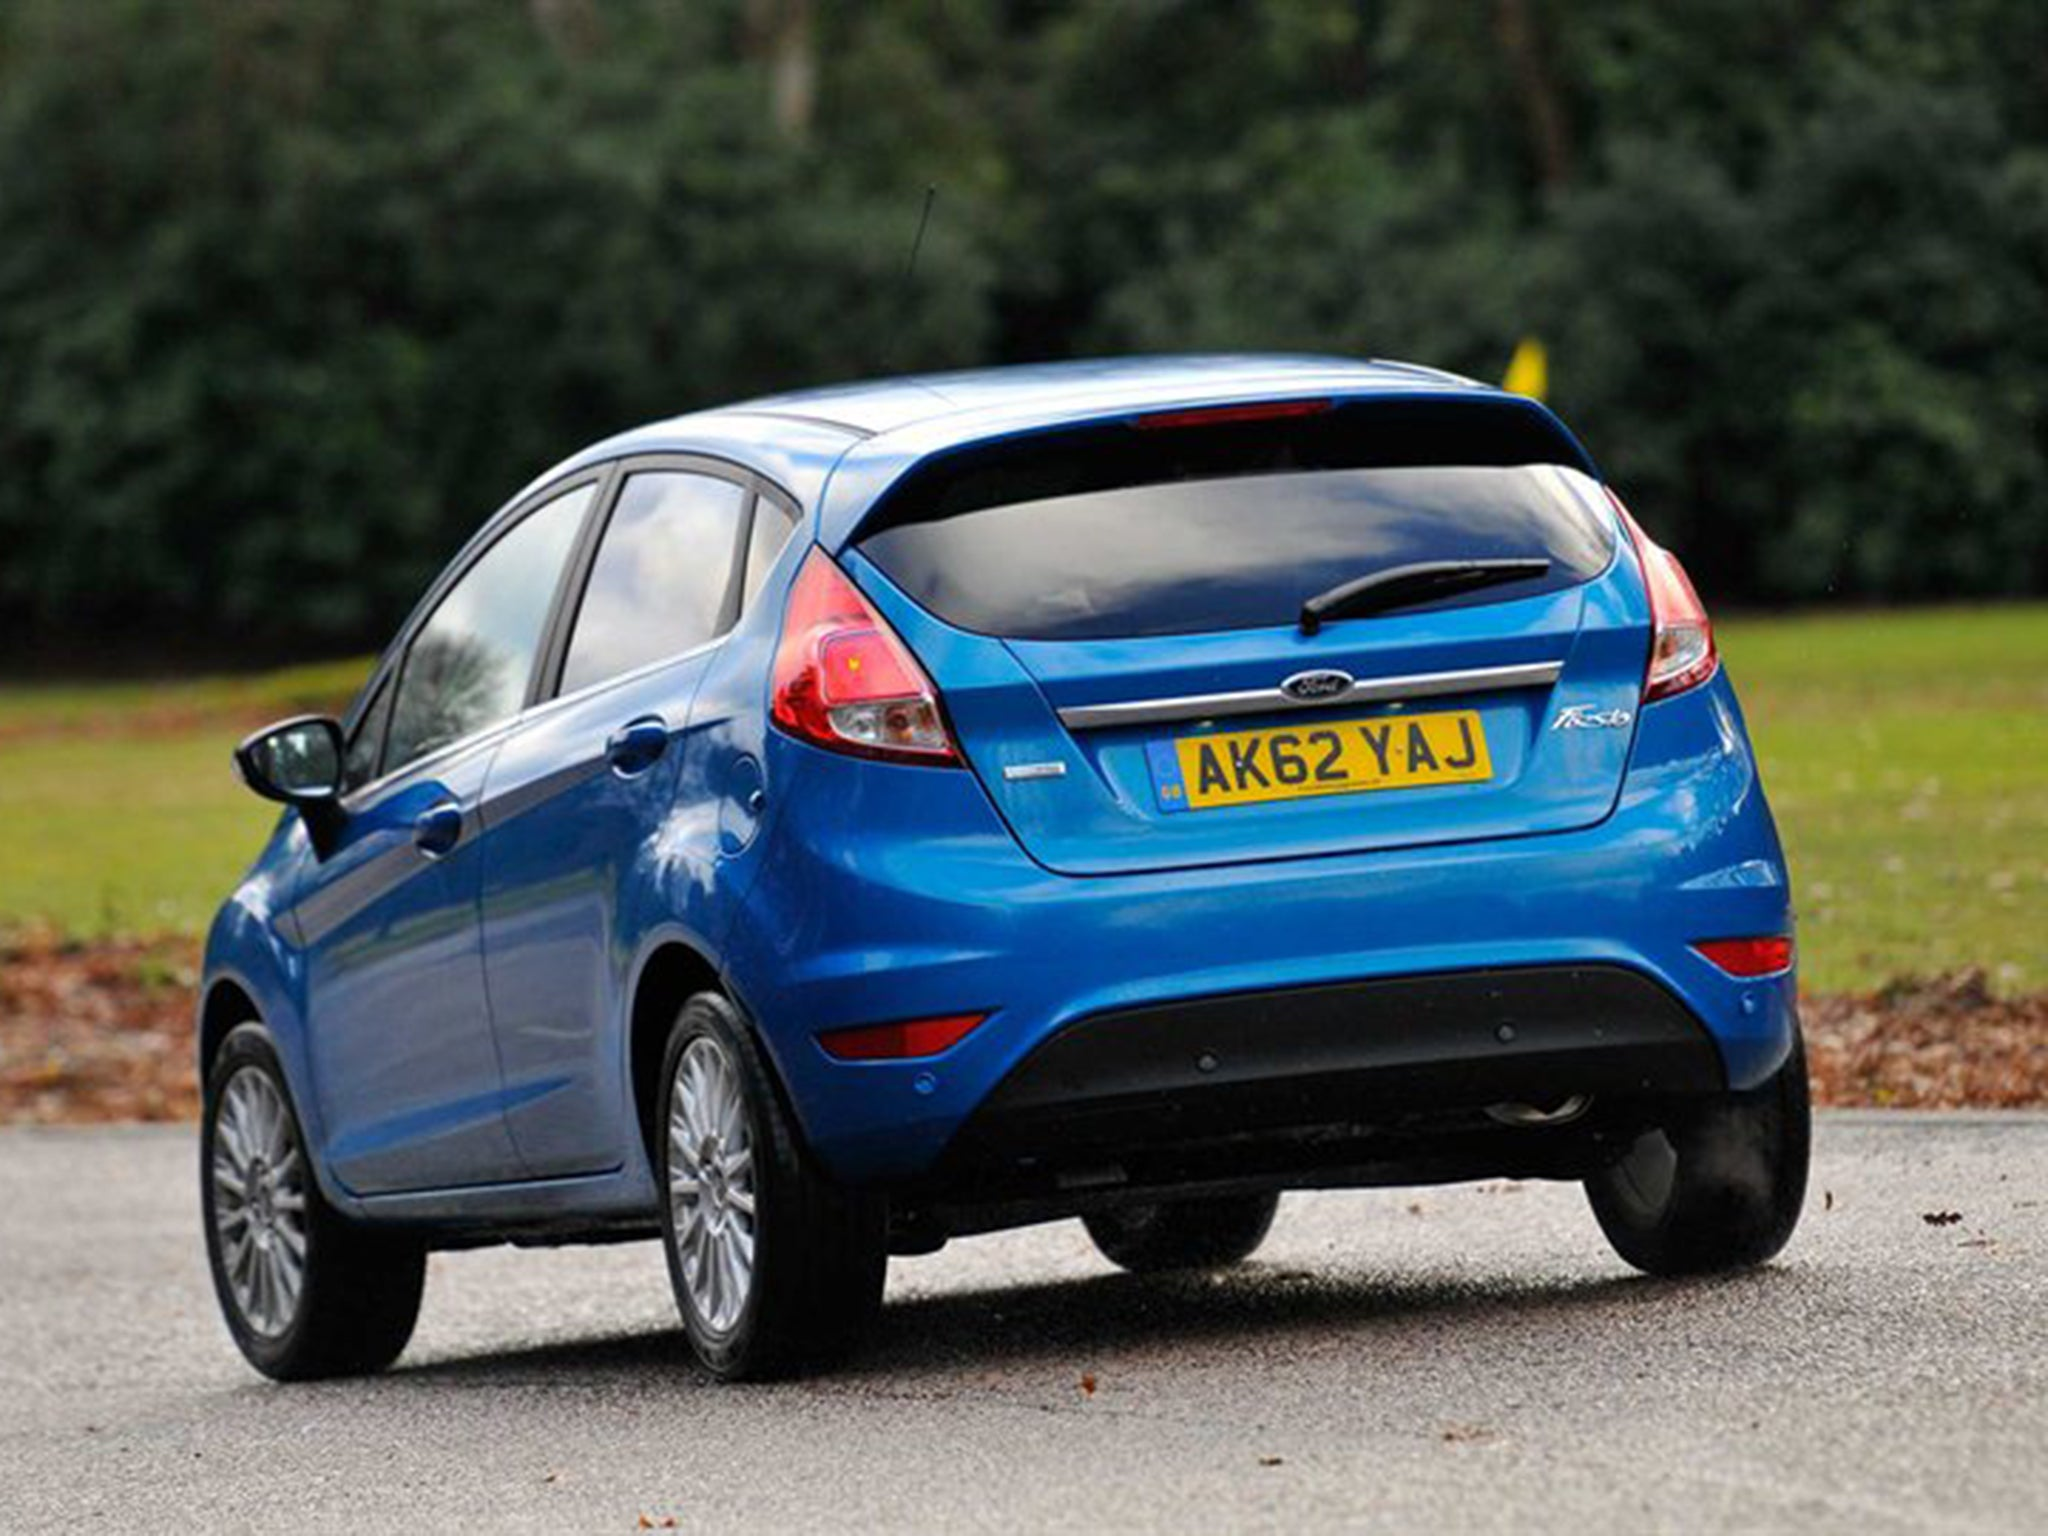 Ford Fiesta, car review: Few things this doesn't do well